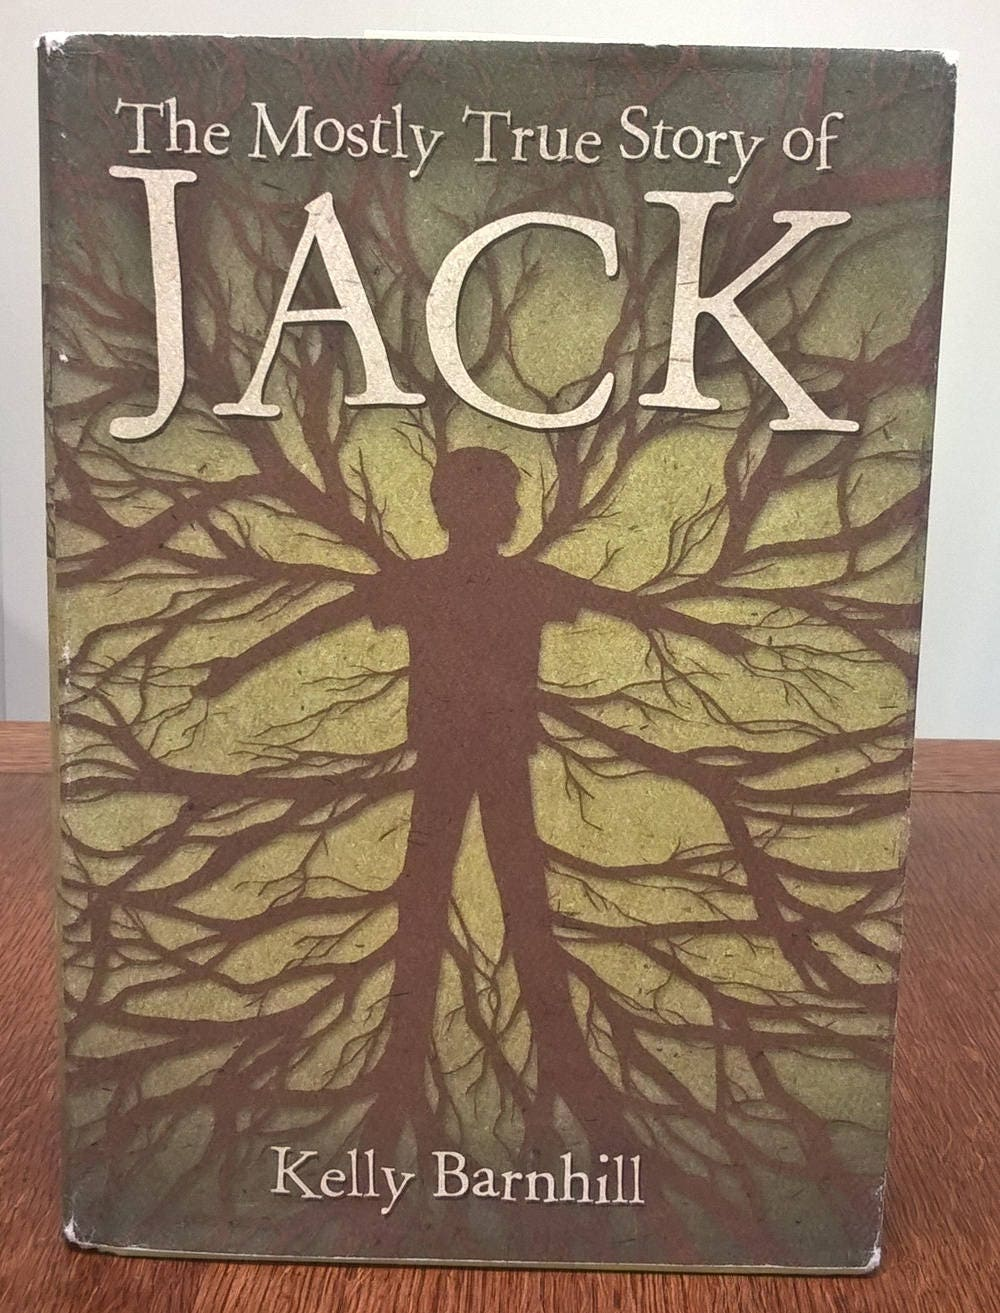 The Mostly True Story of Jack by Kelly Barnhill - First